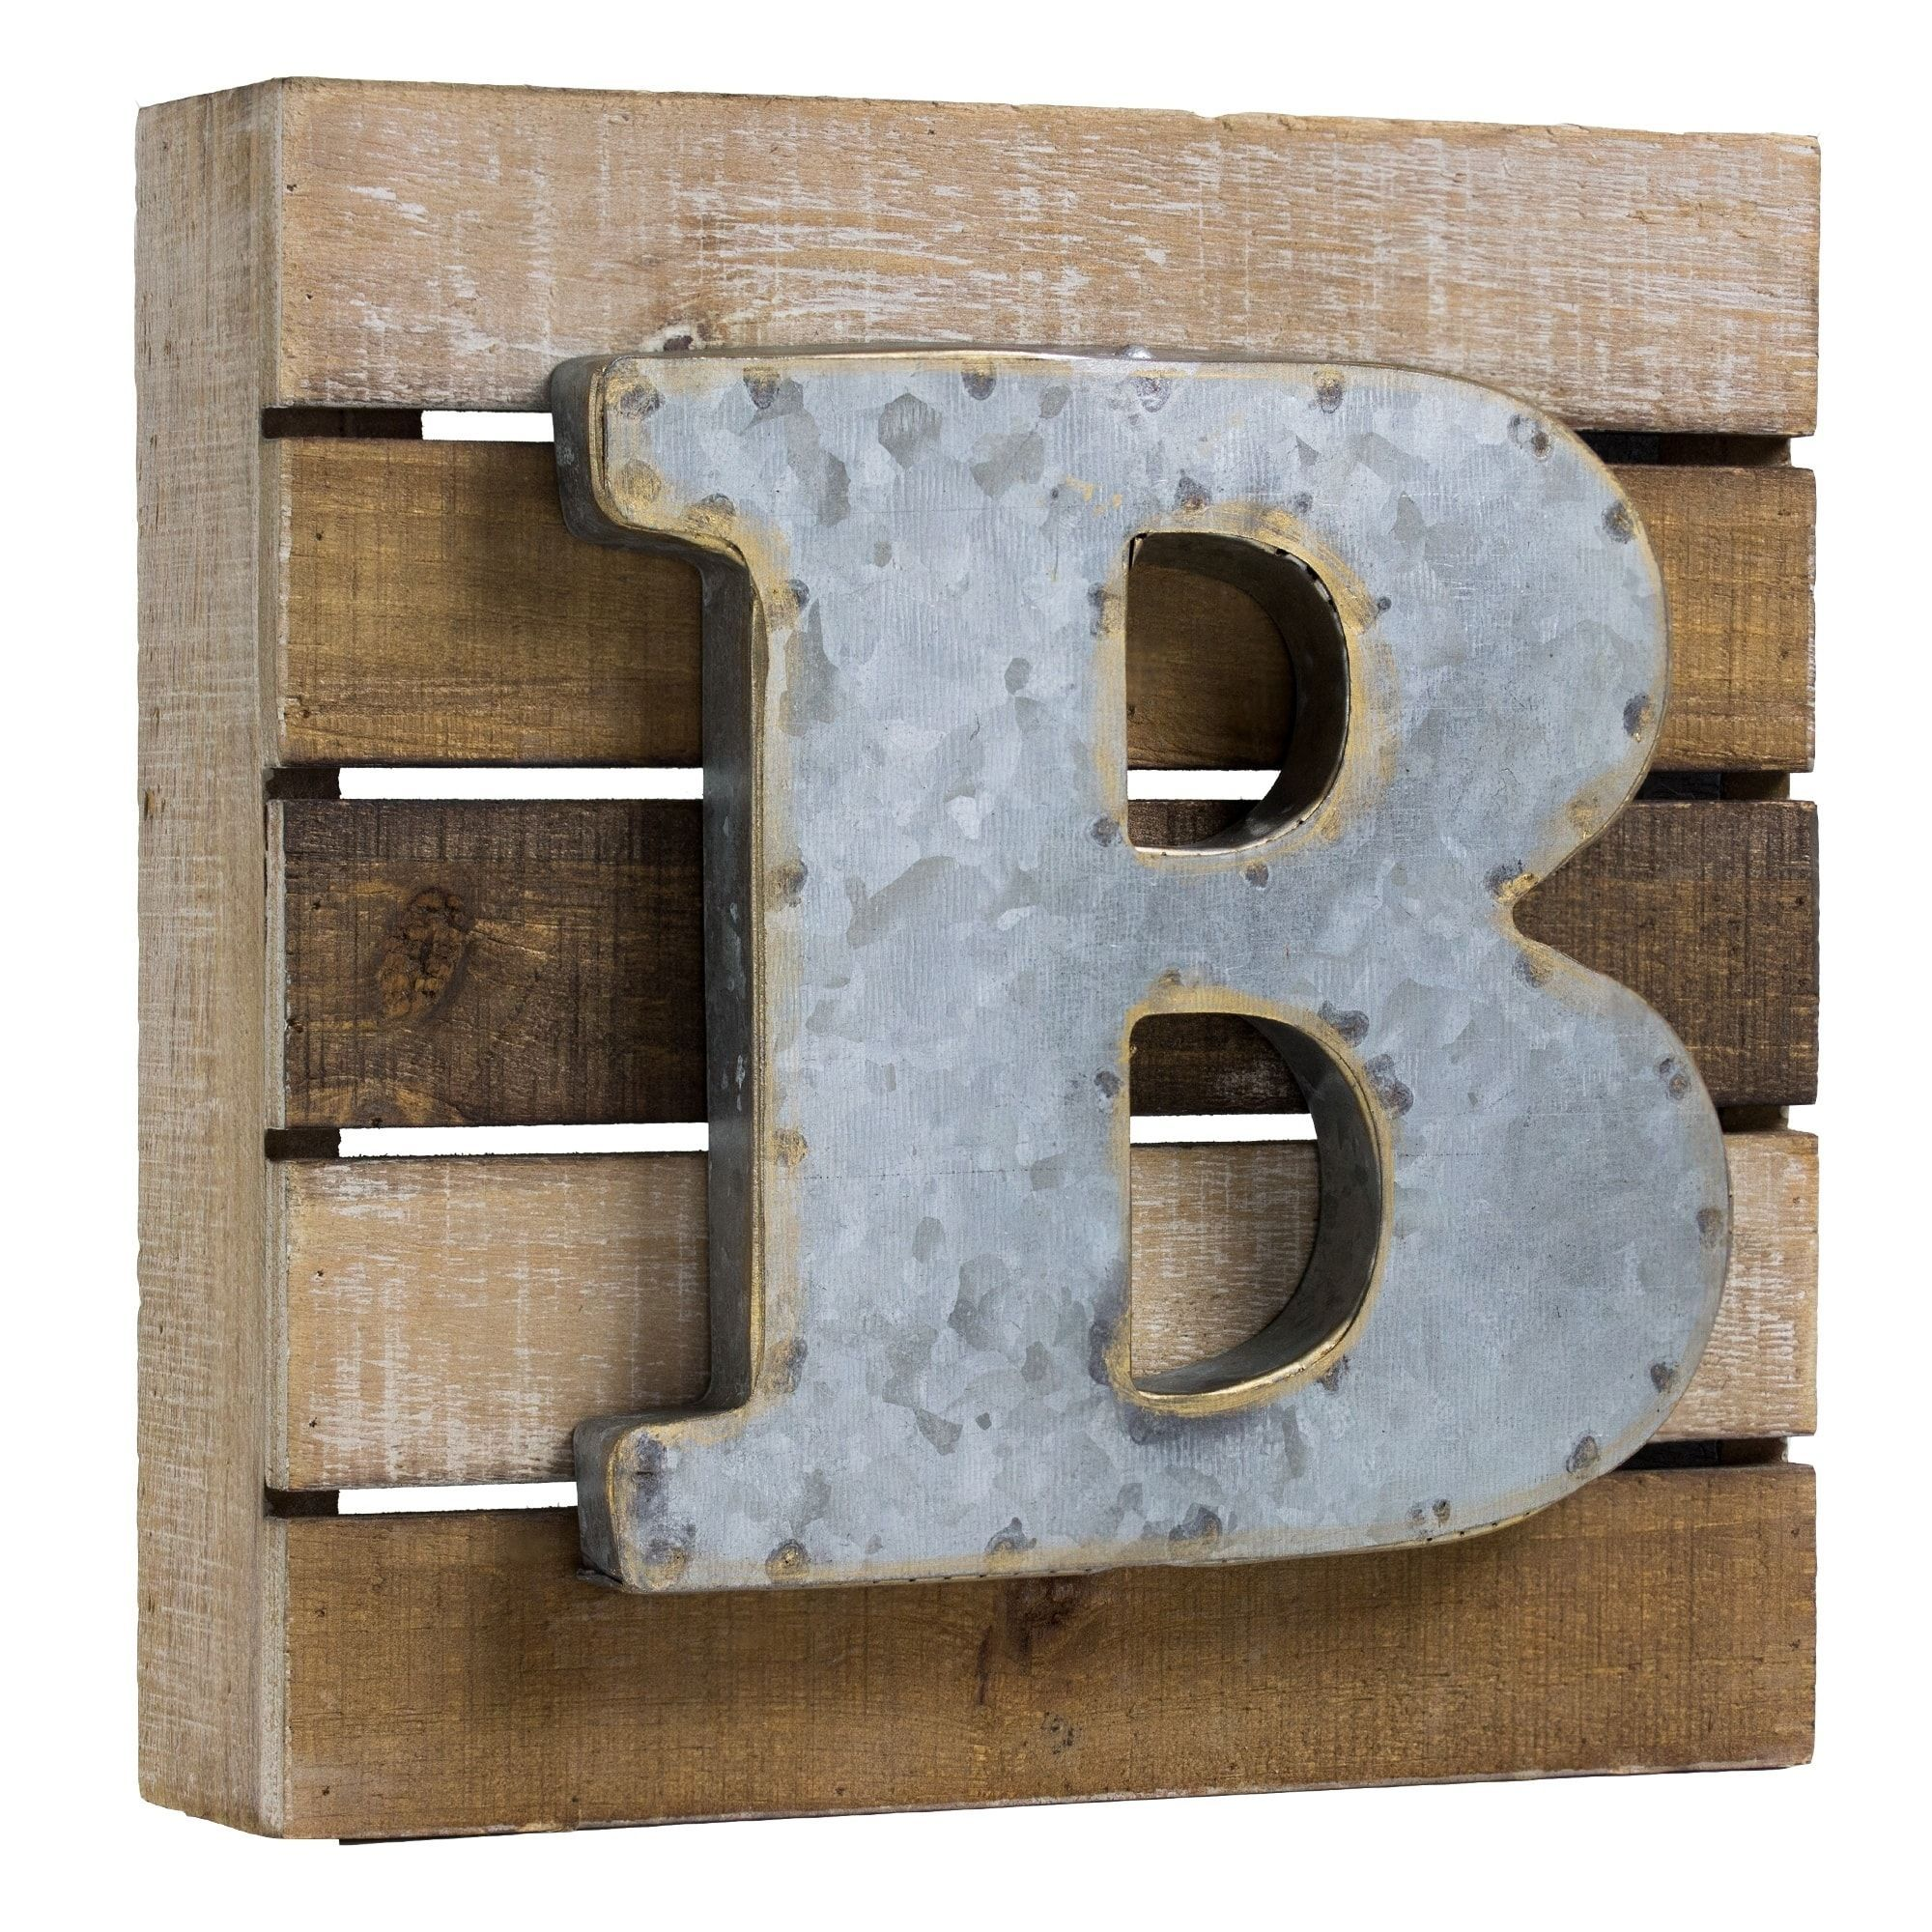 Rustic Letter Wall Decor Easy Craft Ideas